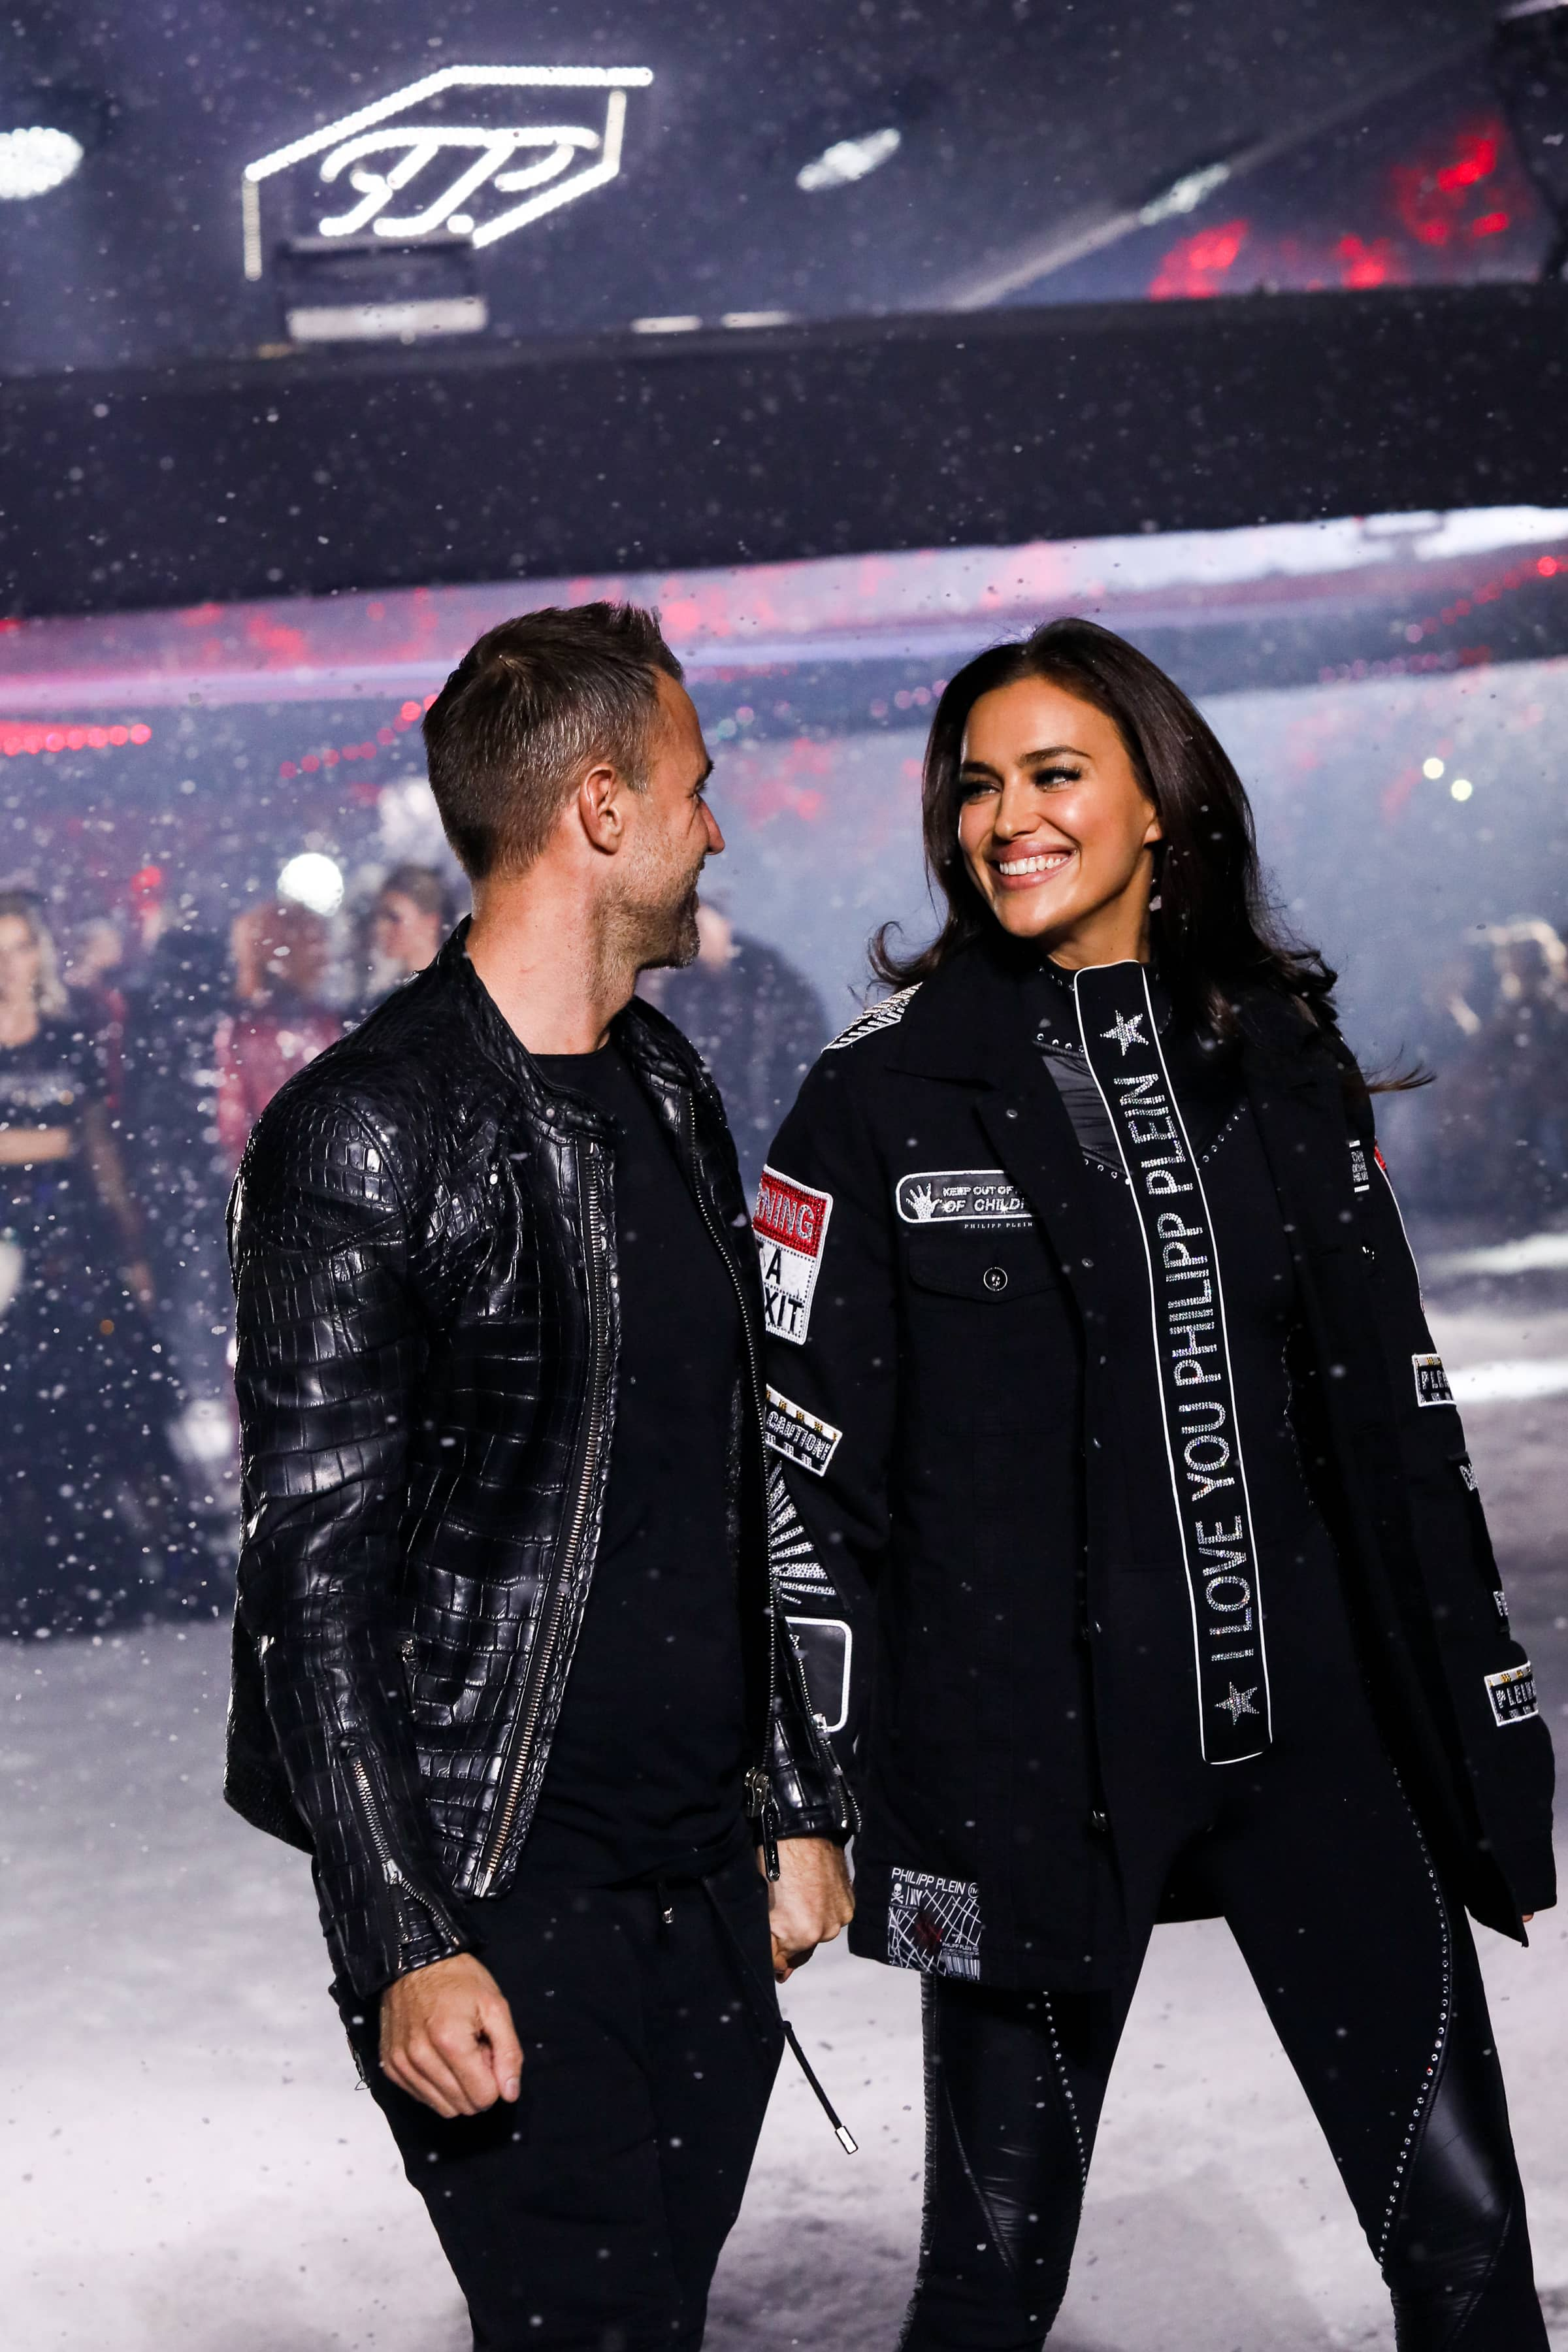 c1c403f2df0c18 This season, every brand from the Plein universe is united in one  spectacular show staged in Brooklyn. Philipp Plein mens and womenswear and  Plein Sport are ...